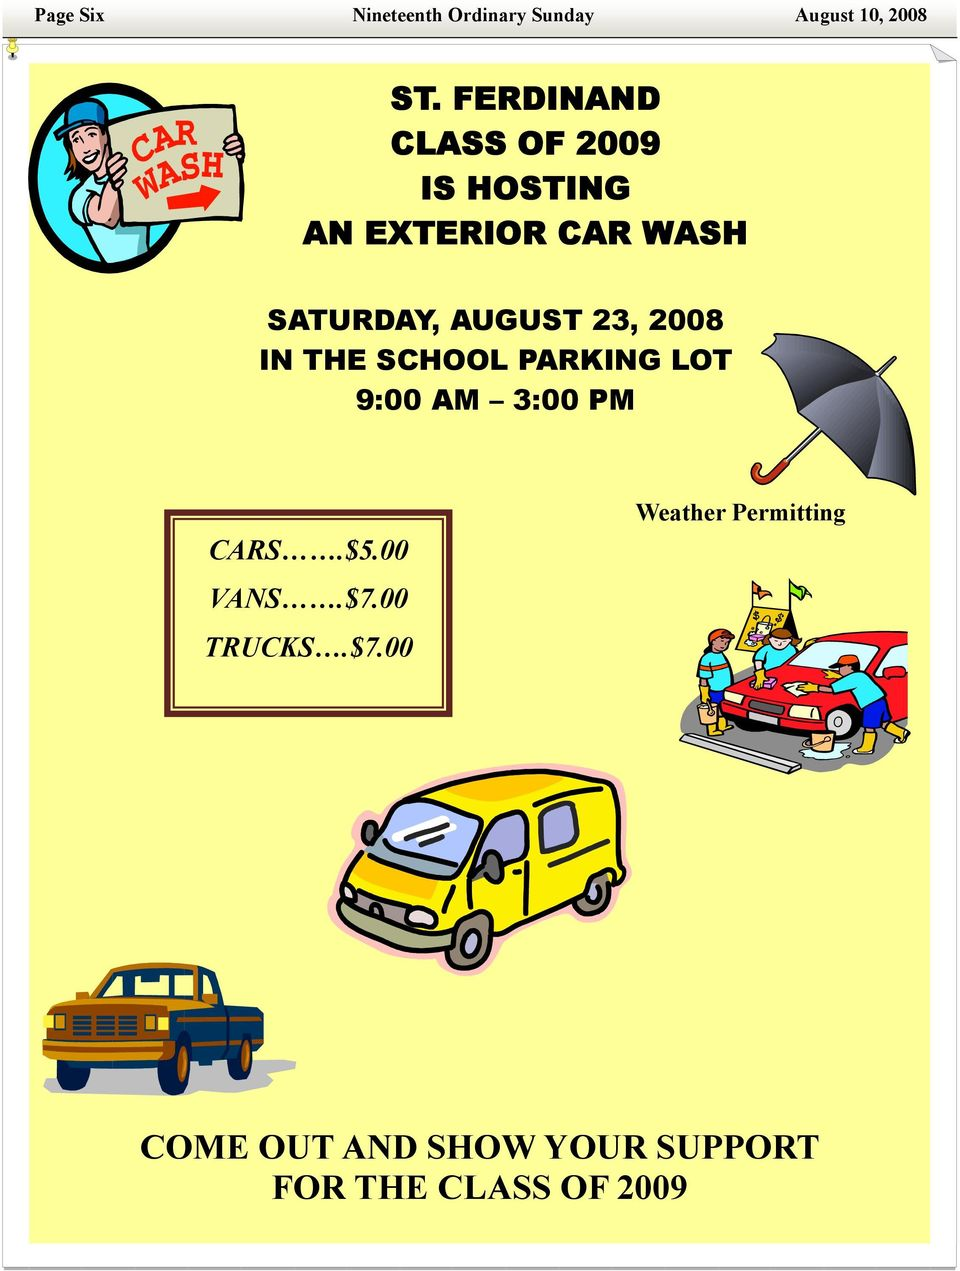 AUGUST 23, 2008 IN THE SCHOOL PARKING LOT 9:00 AM 3:00 PM CARS.$5.